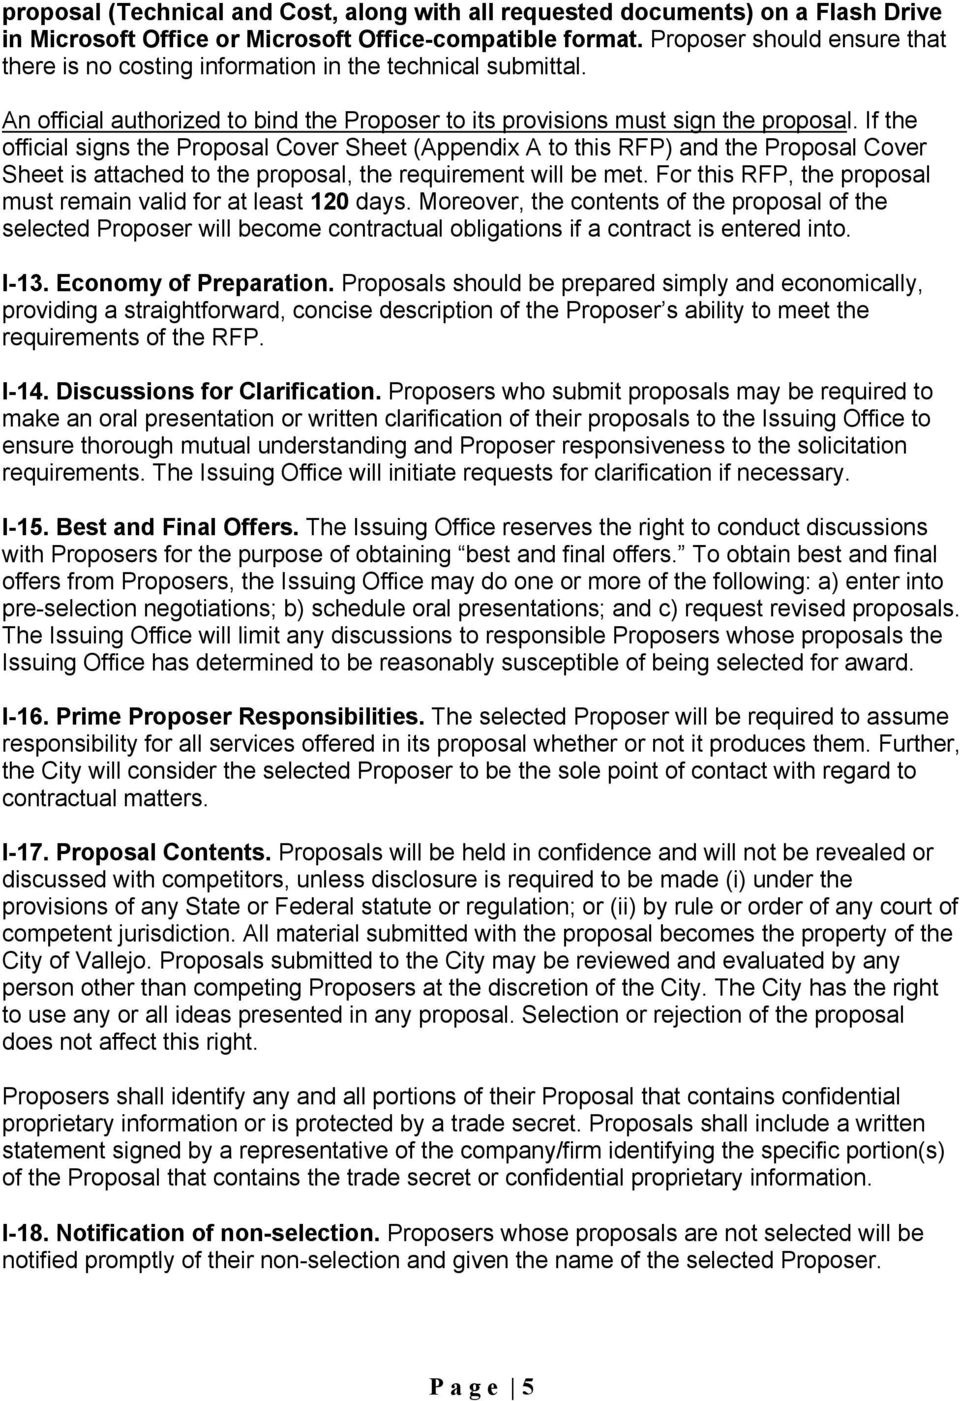 If the official signs the Proposal Cover Sheet (Appendix A to this RFP) and the Proposal Cover Sheet is attached to the proposal, the requirement will be met.